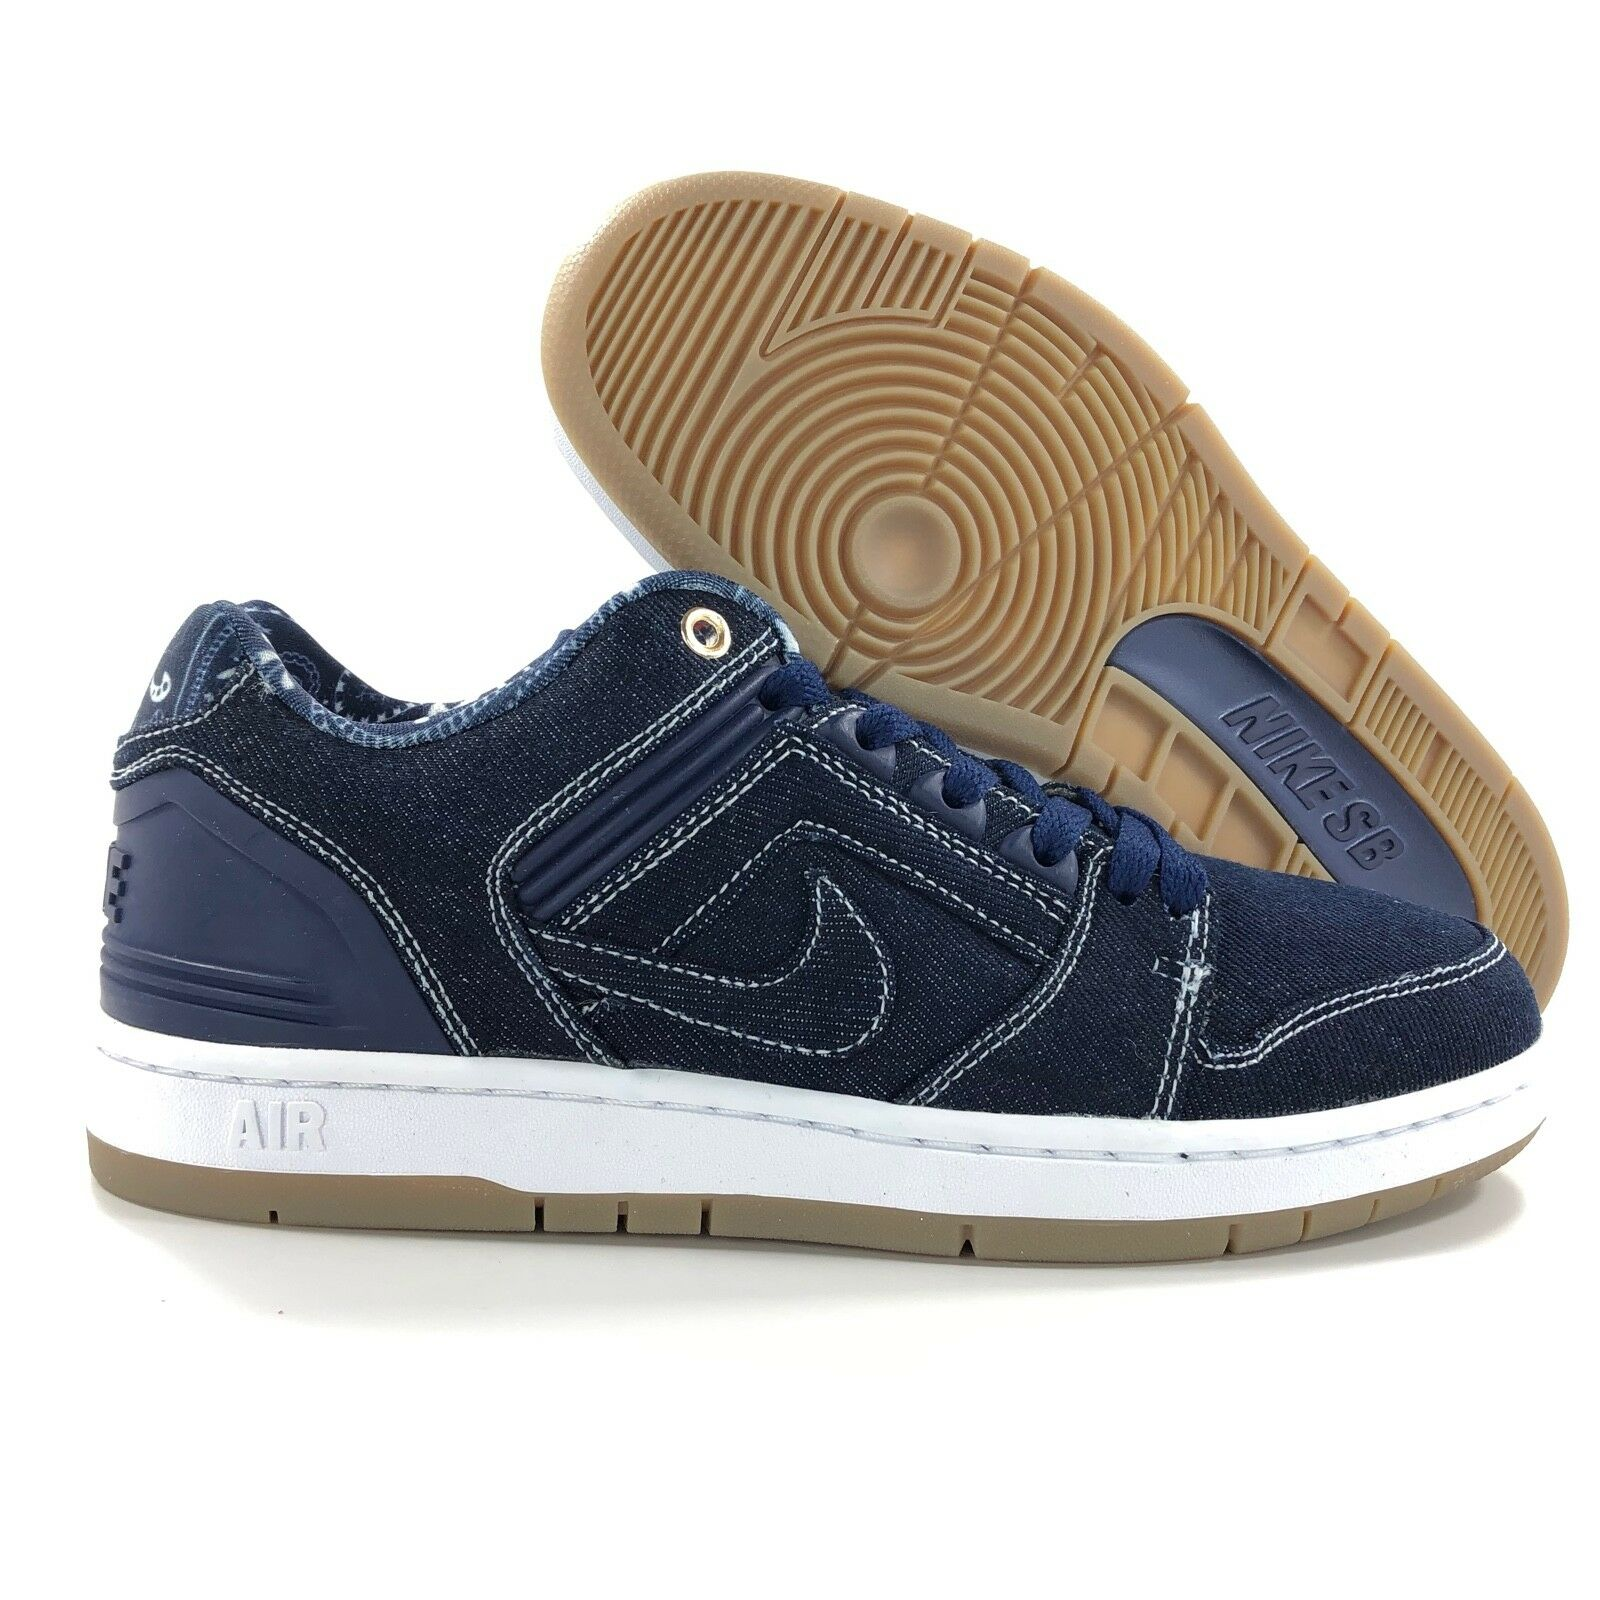 huge selection of free delivery lower price with Nike SB Air Force II 2 Low QS Tupac Denim Binary Blue White AO0298-441 Mens  8-11